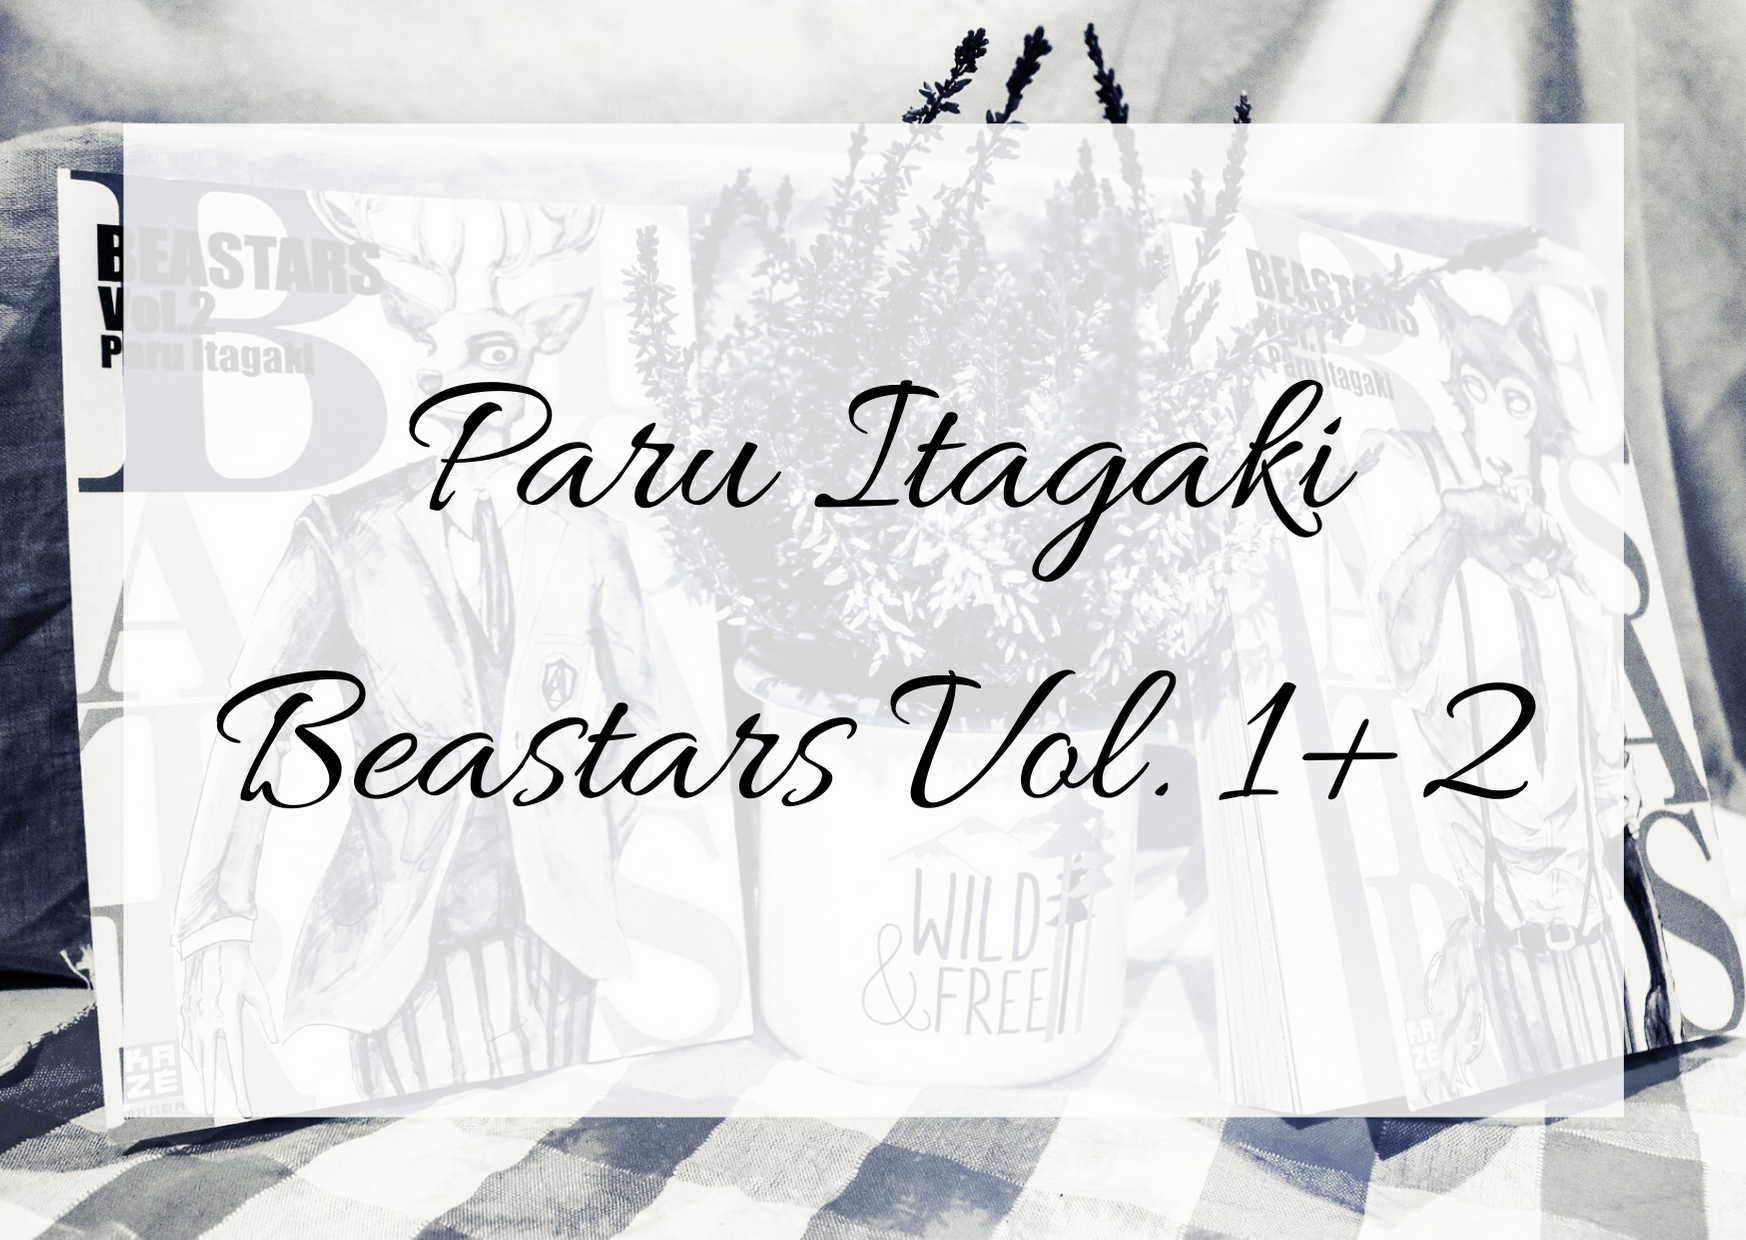 [Rezension] Paru Itagaki – Beastars Vol. 1 + Vol. 2